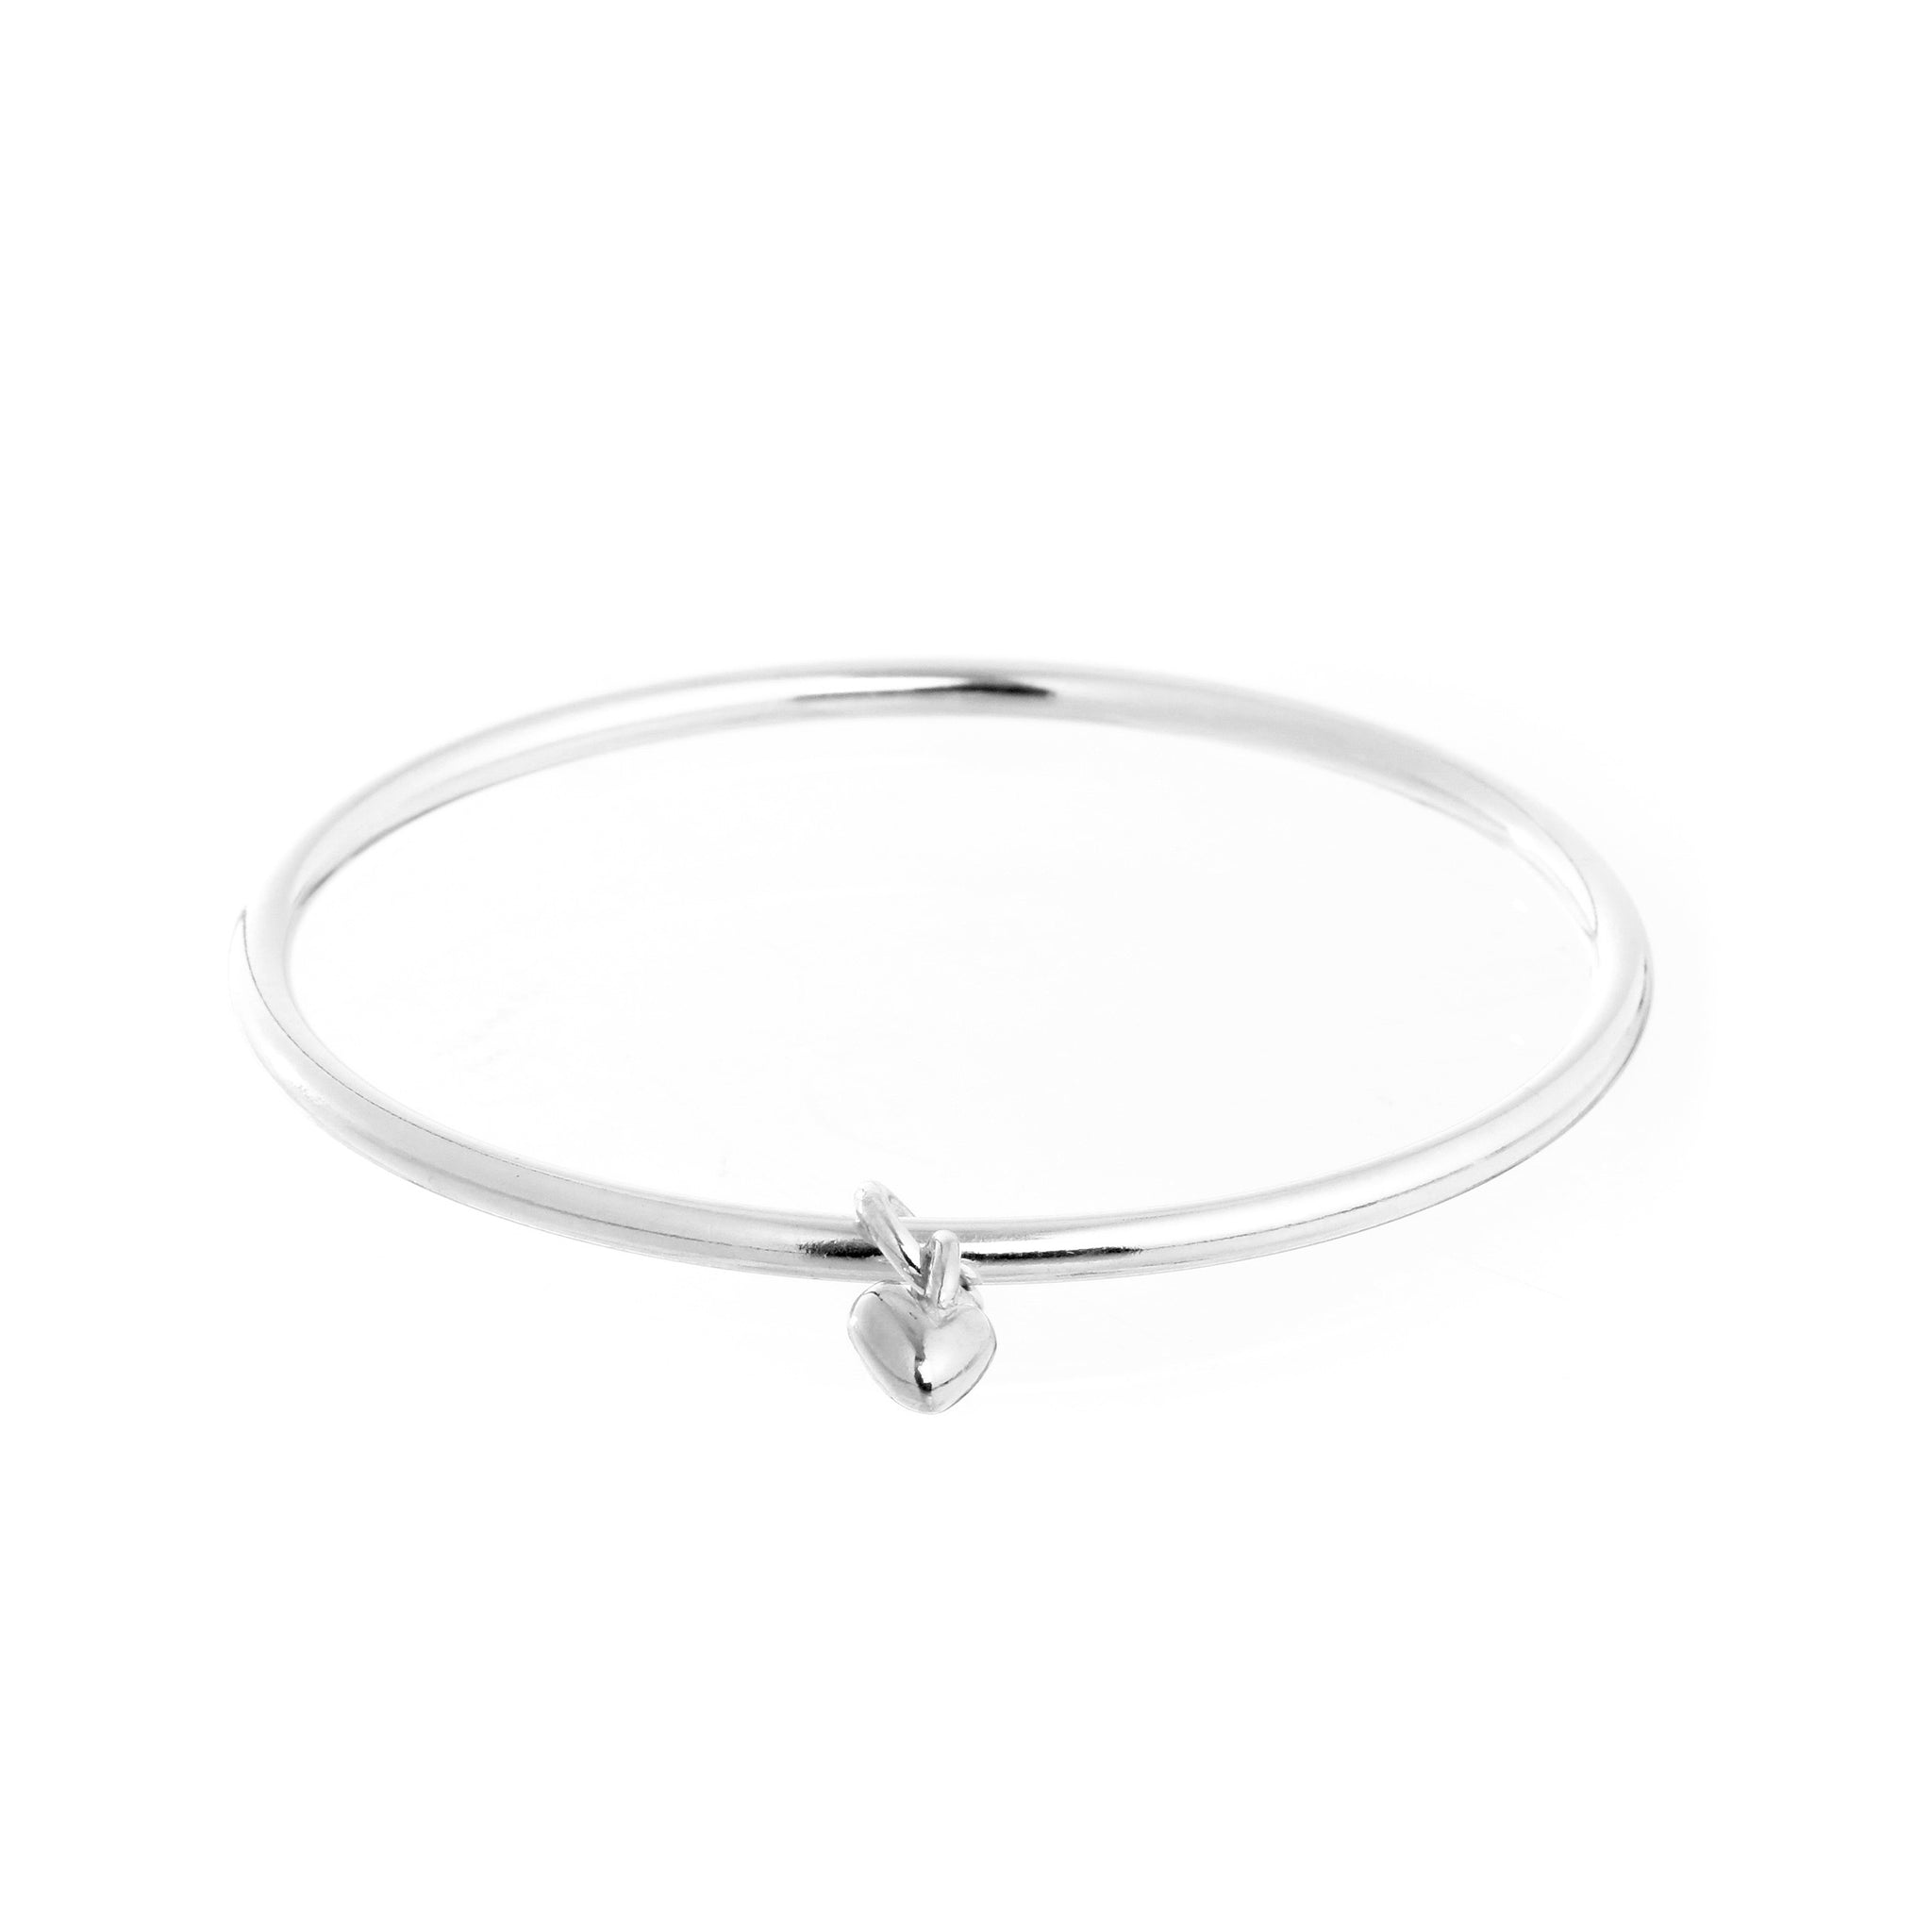 Sweetheart Silver Heart Charm Bangle